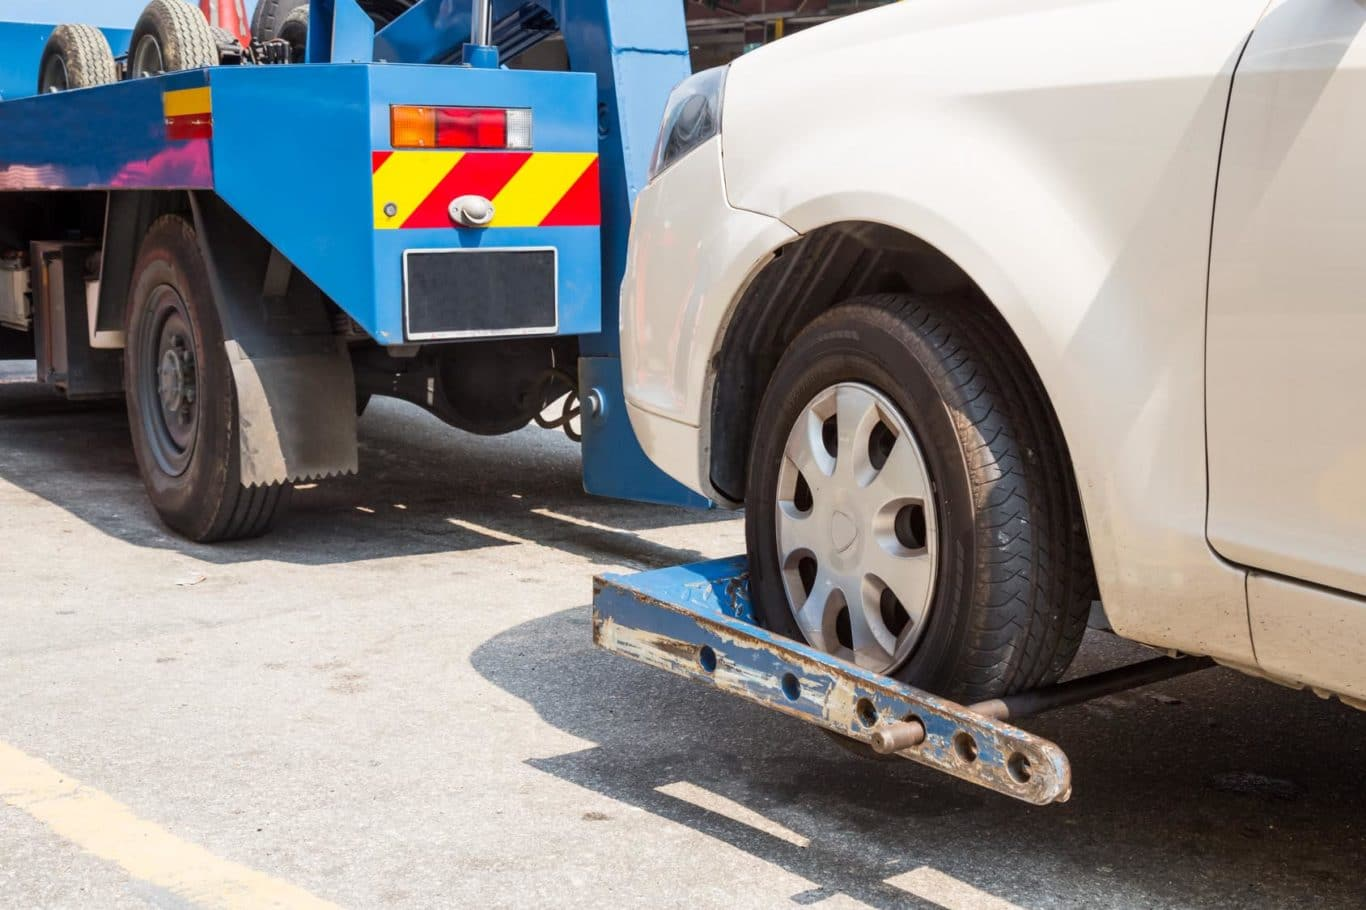 Enfield, County Meath expert Roadside Assistance services